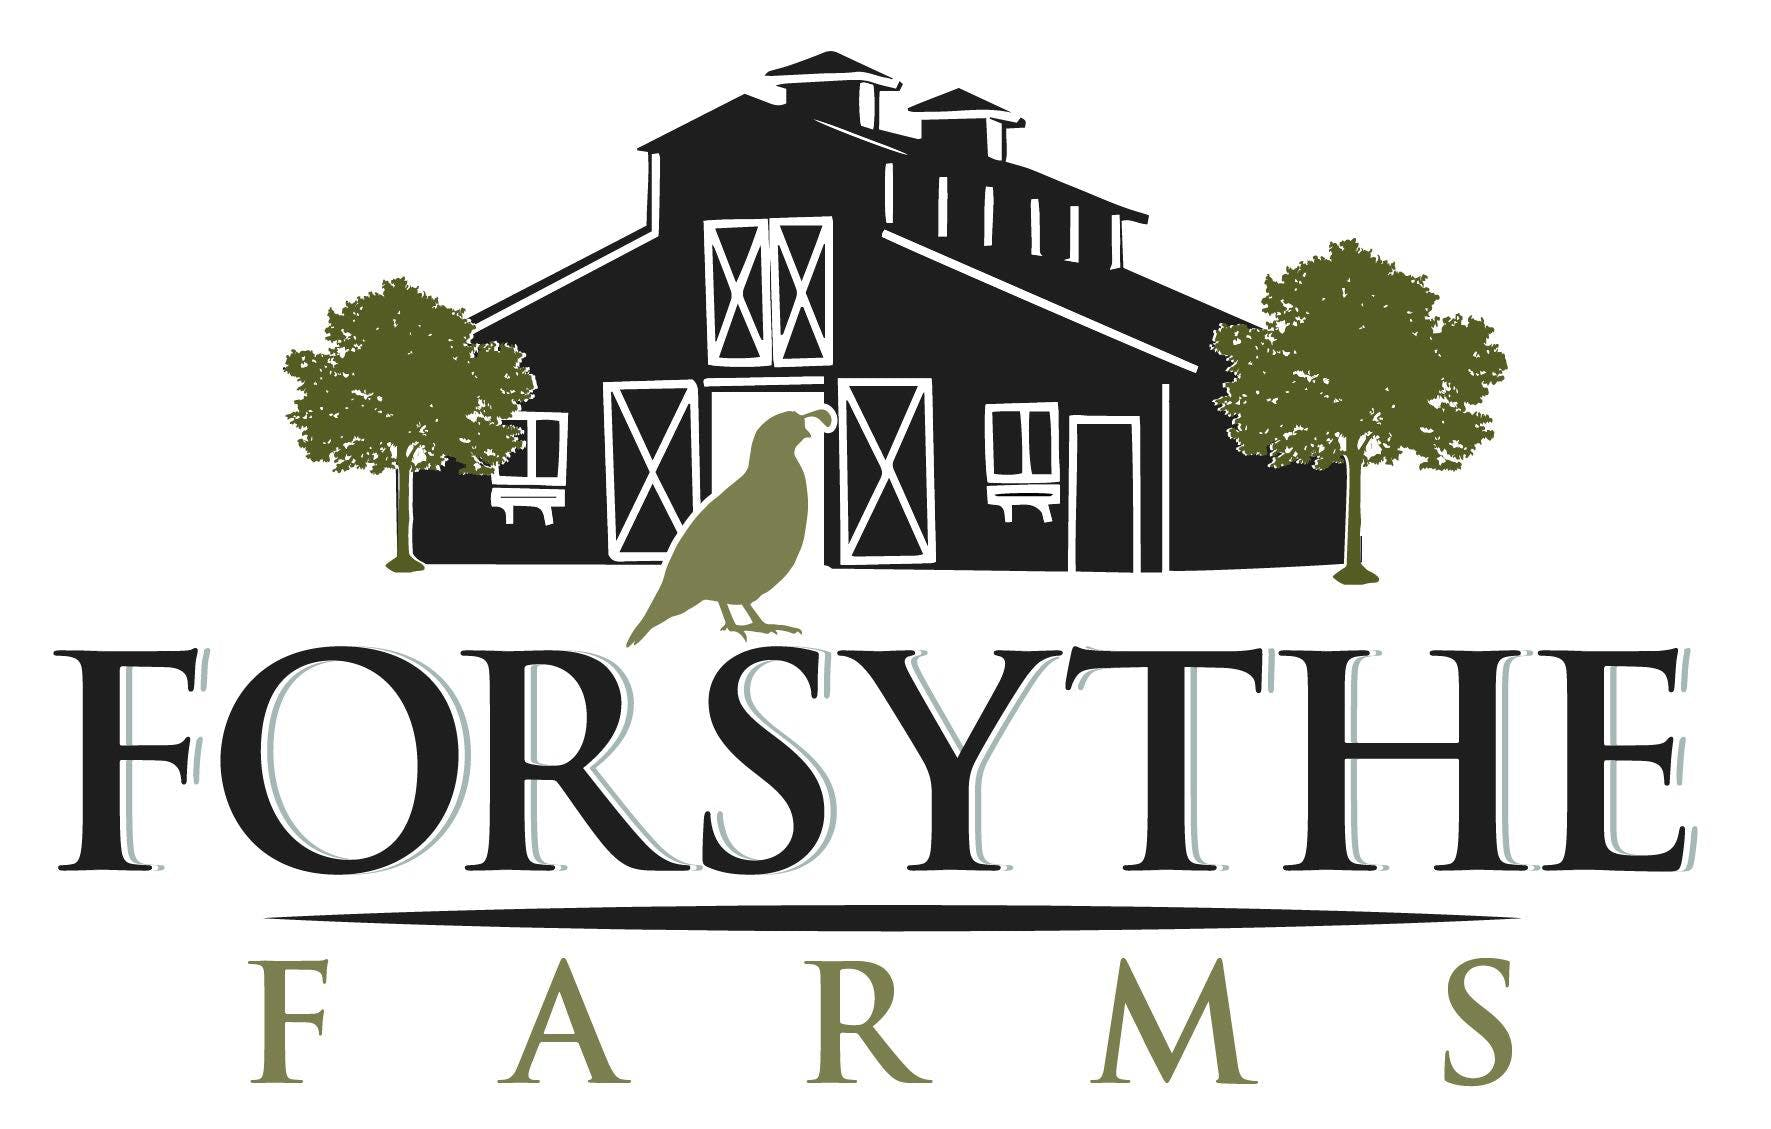 About Forsythe Farms